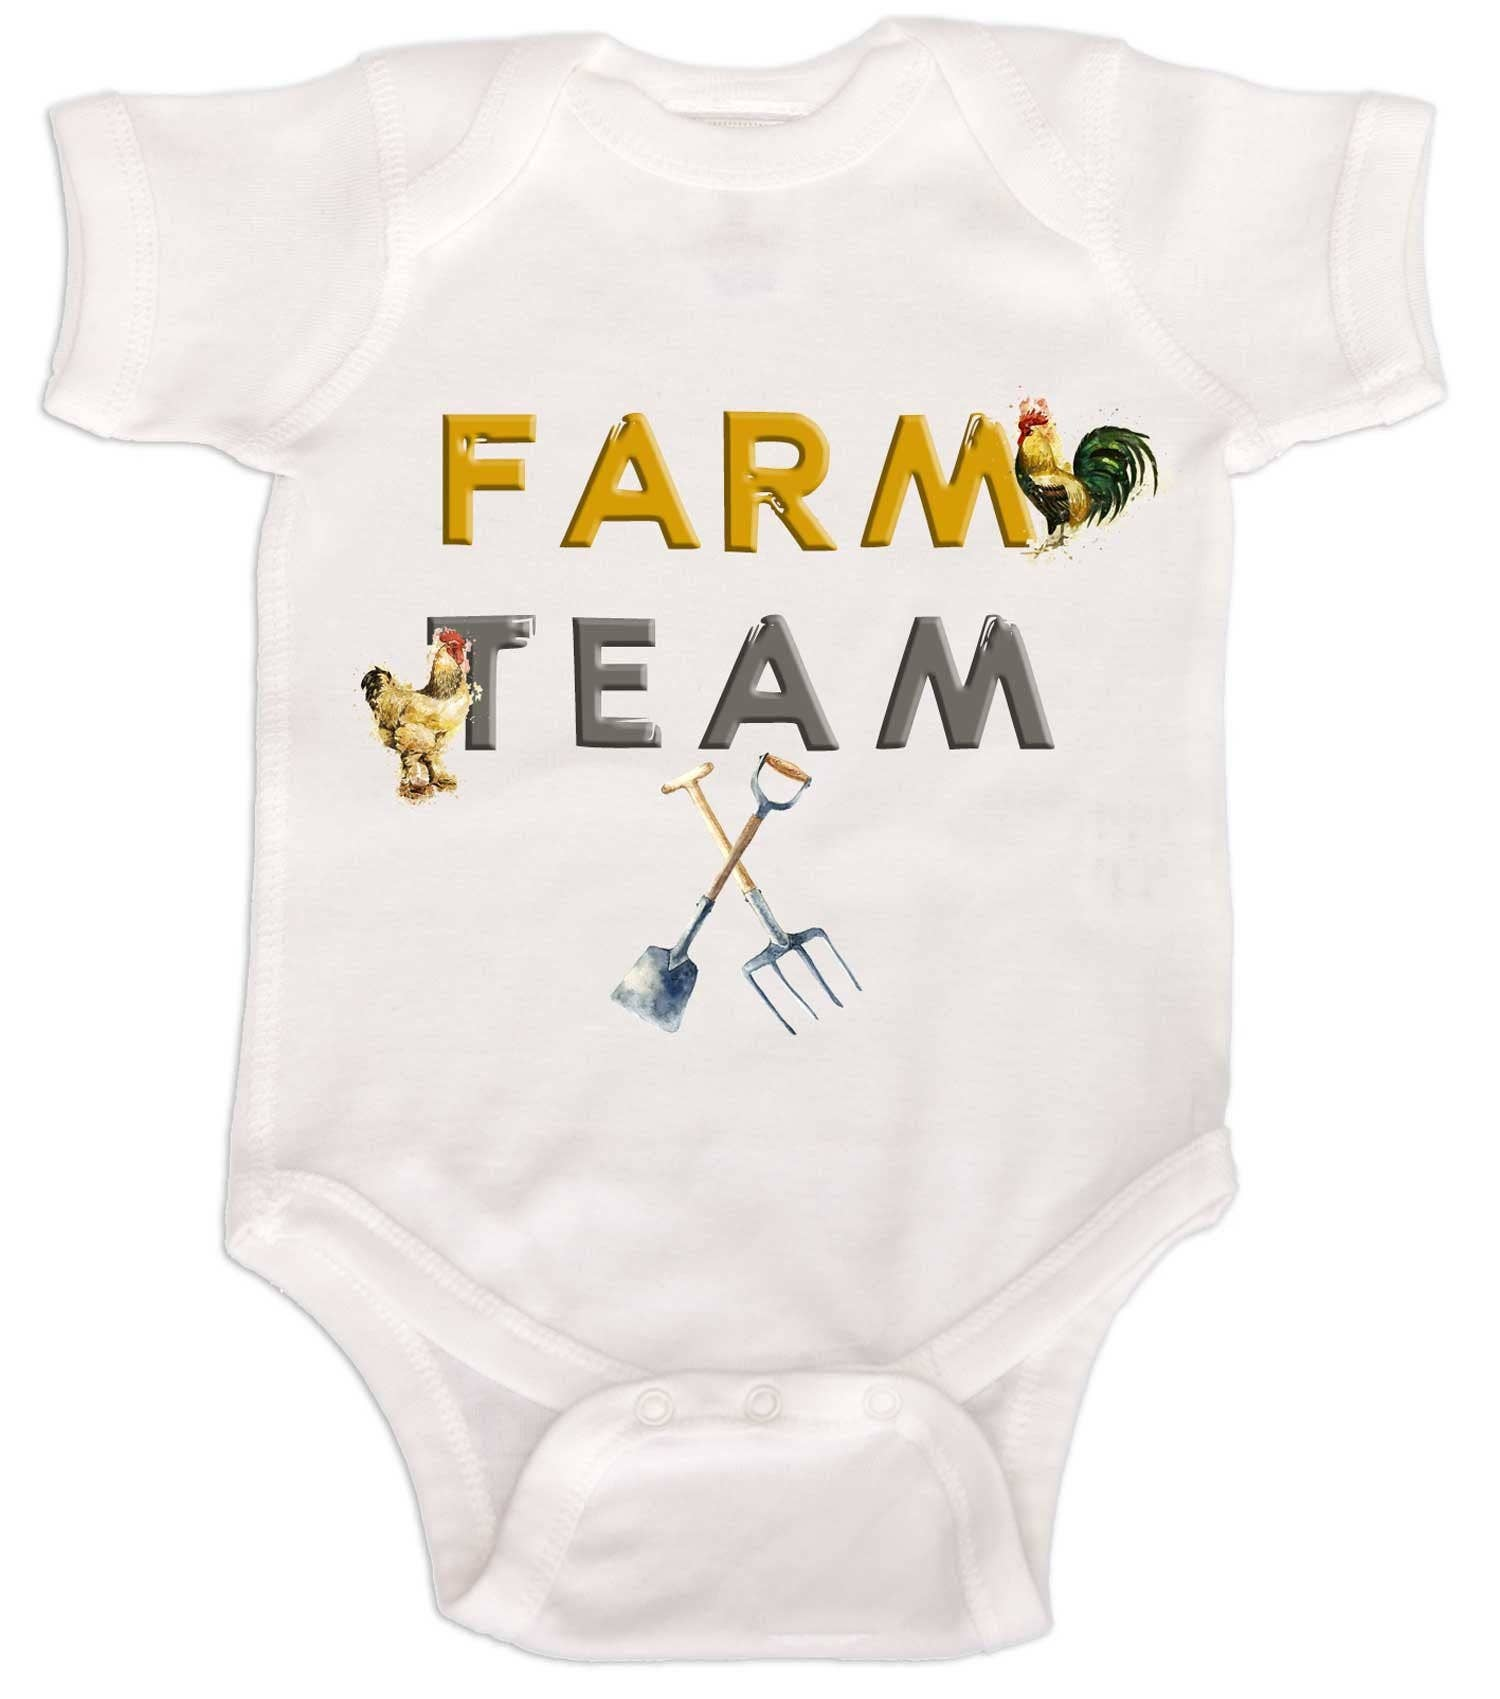 Taylor Gang infant Baby Boy Clothes One PIECE Bodysuit